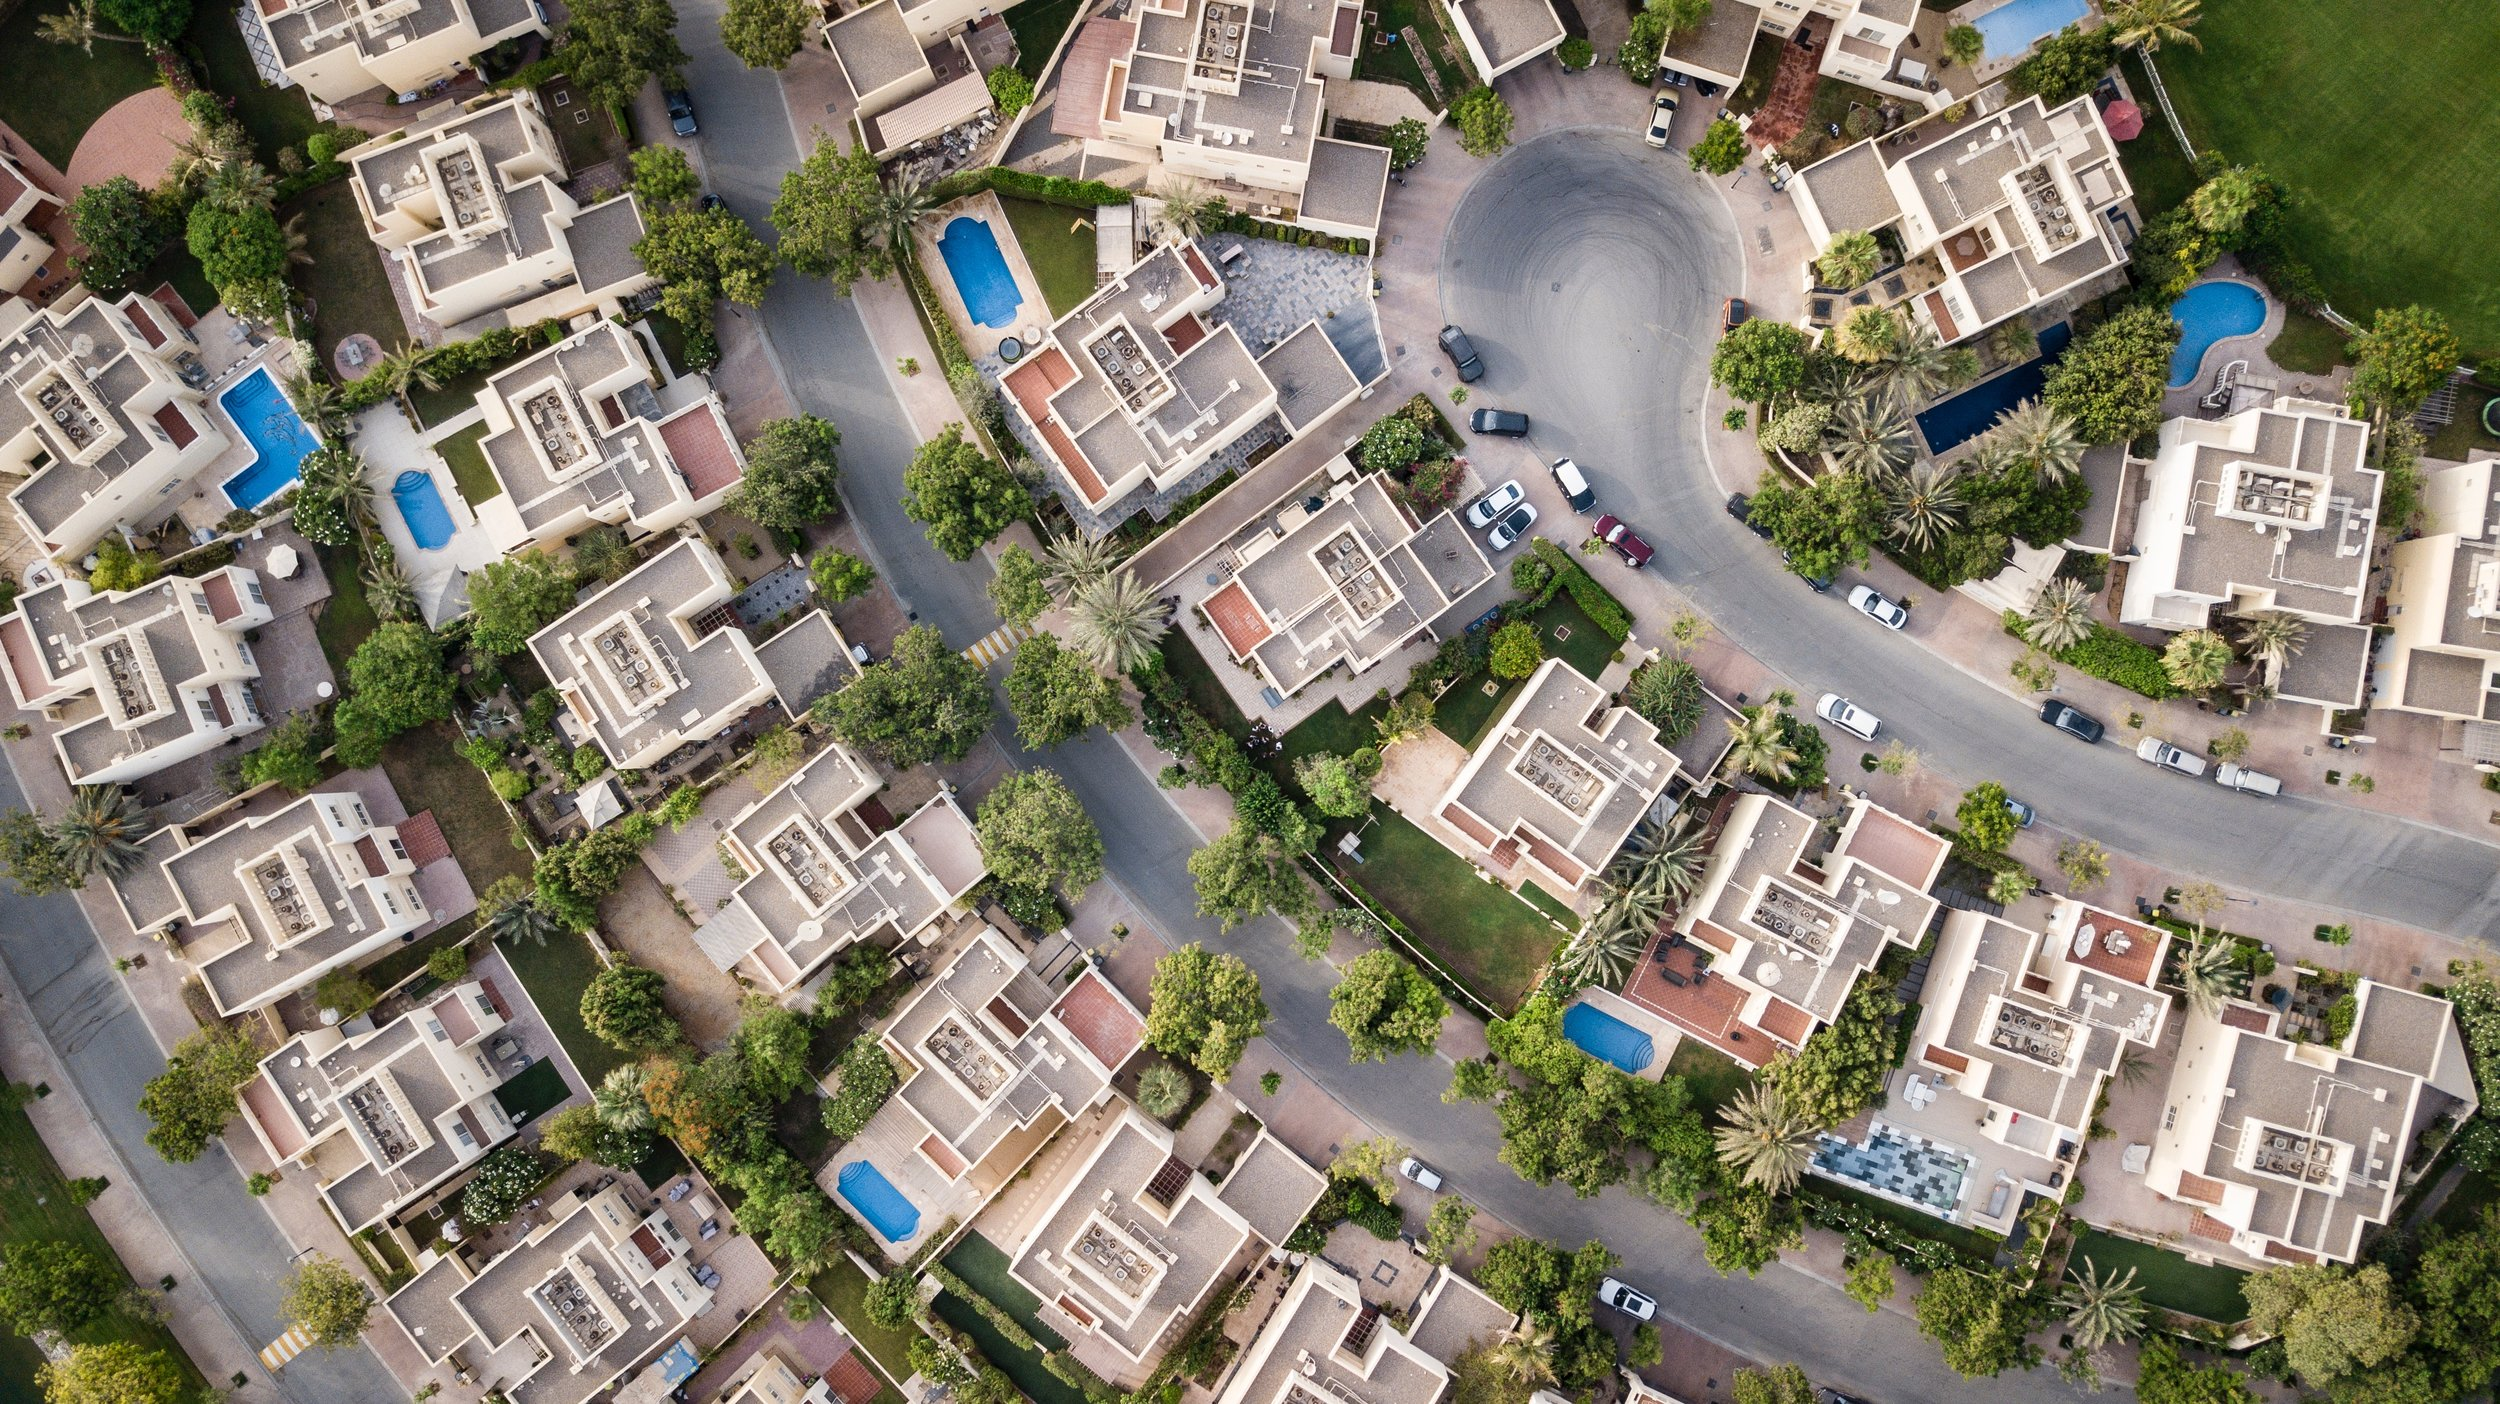 Aerial Photos/Videos    Drone photography/videography has not only made listings stand out among the rest, but also helps secure sales.